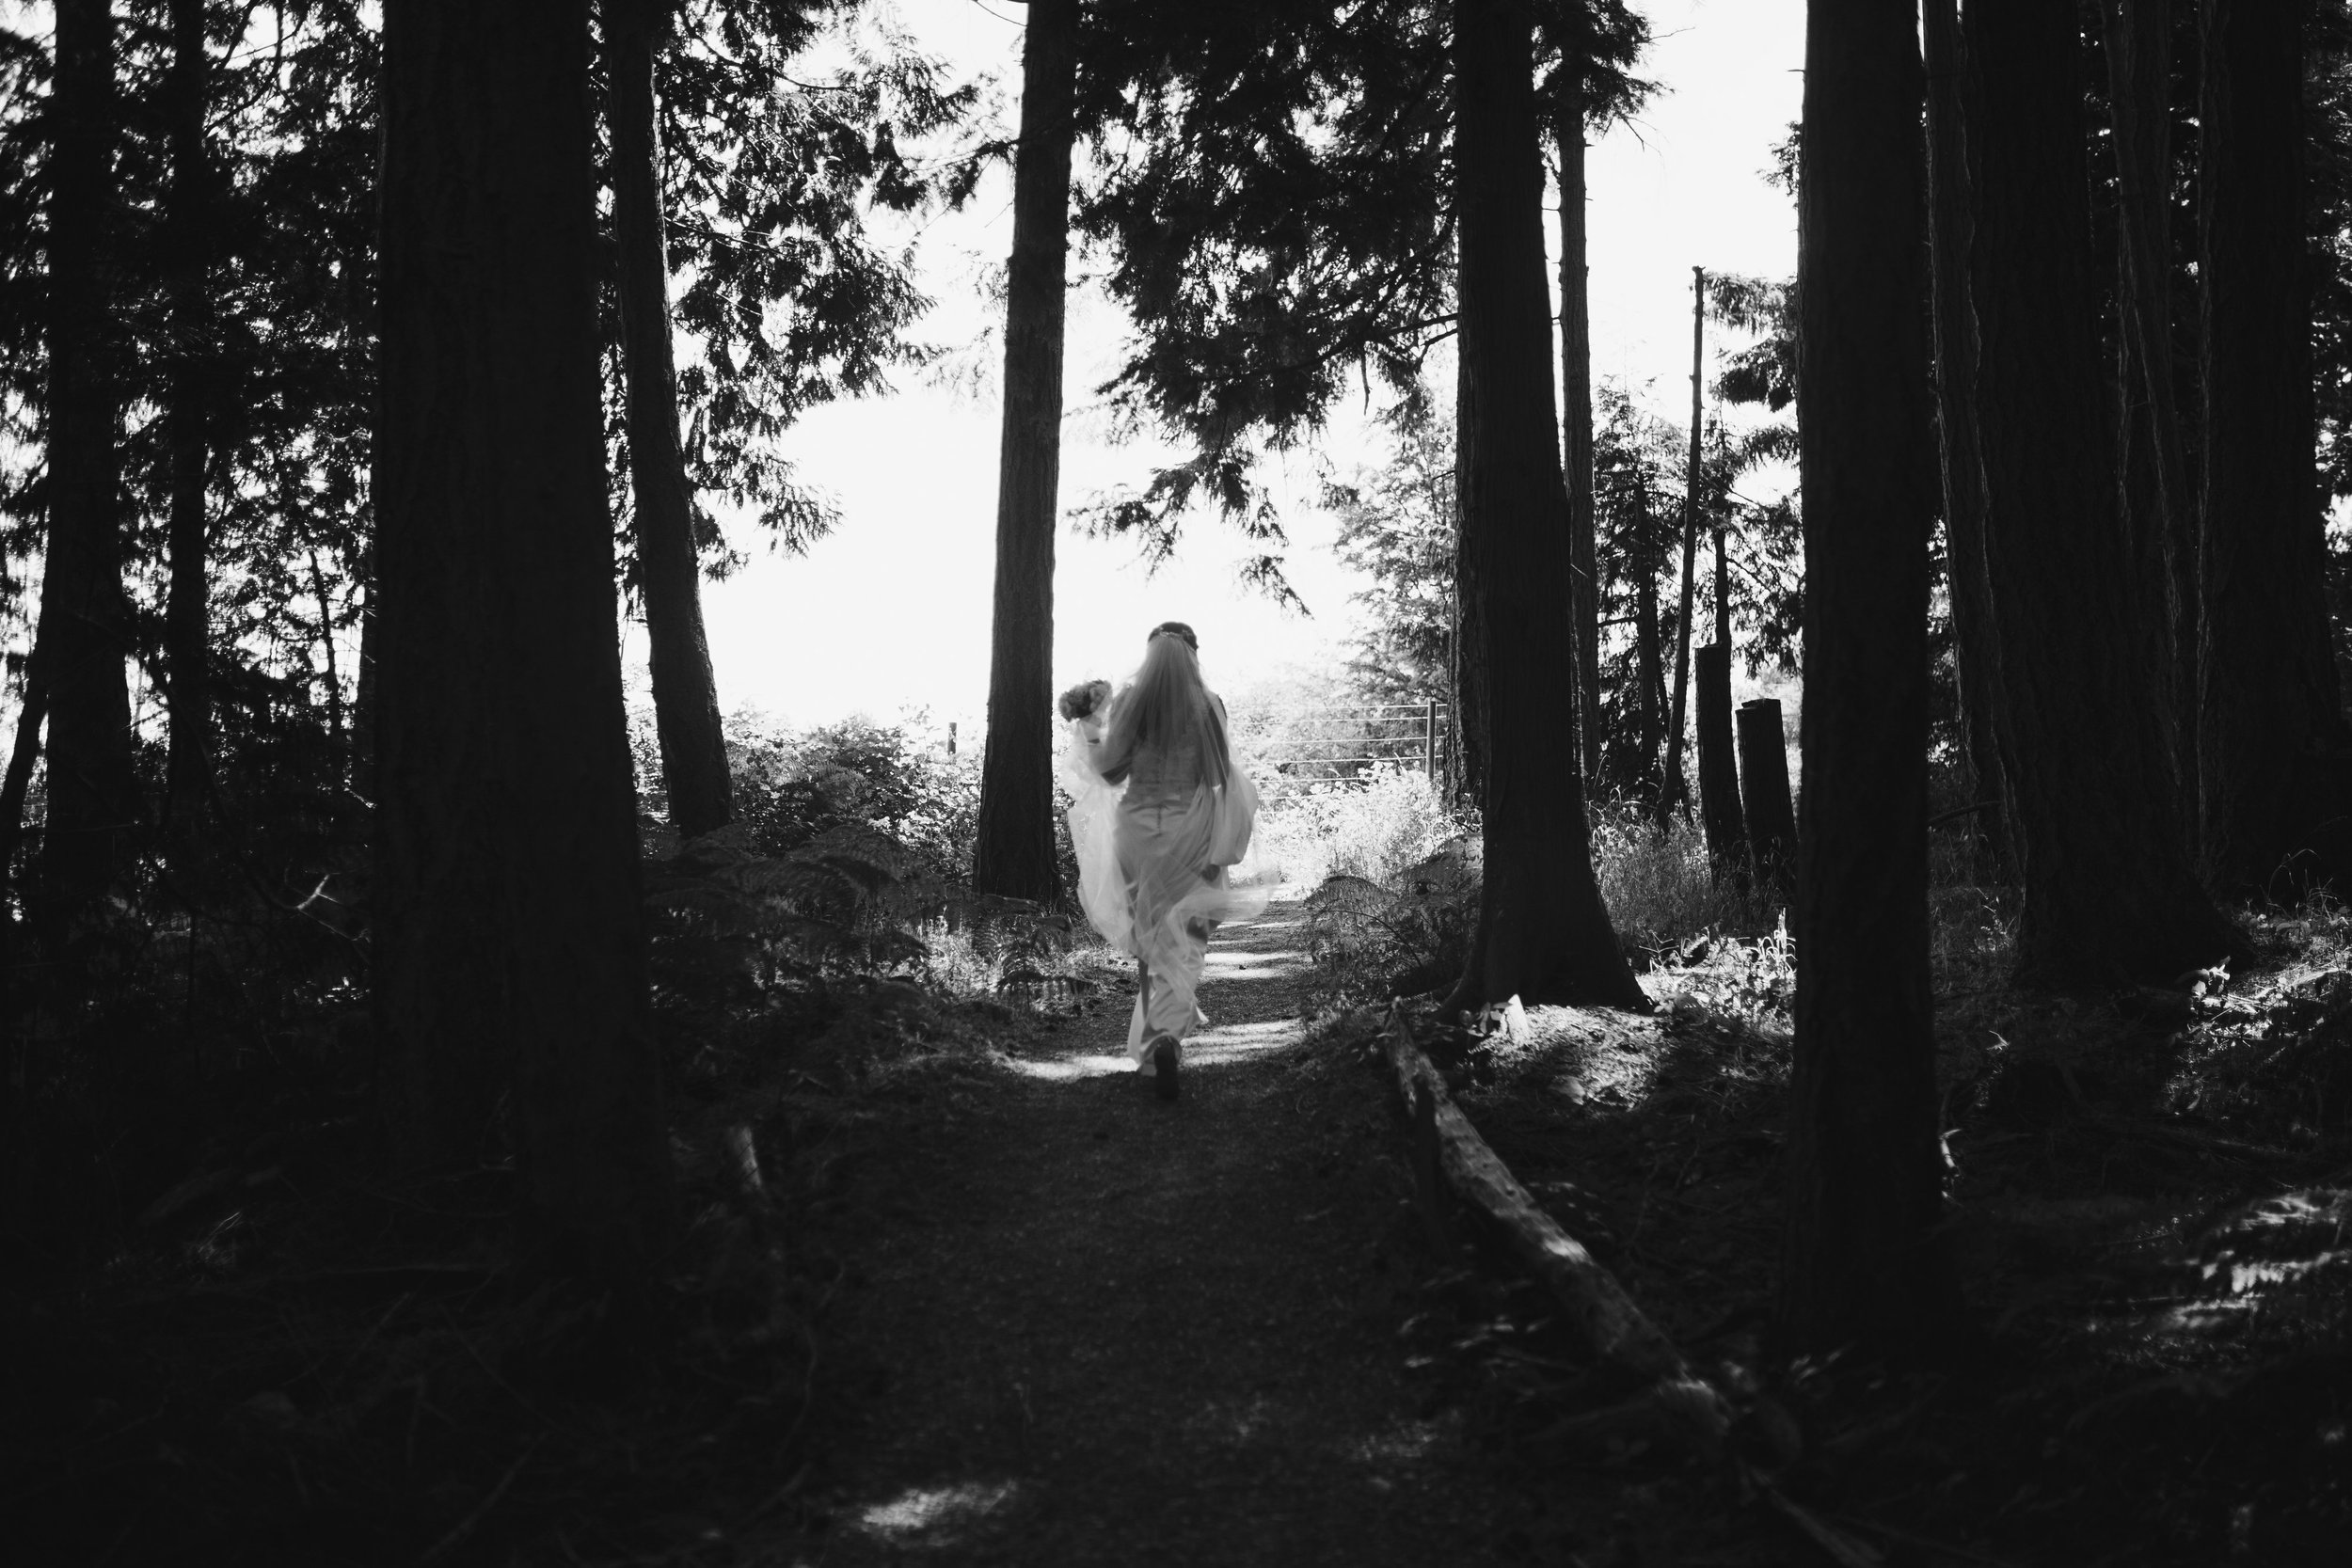 a picturesque shot of the bride Forest wedding Tofino Sea Cider Vancouver Island